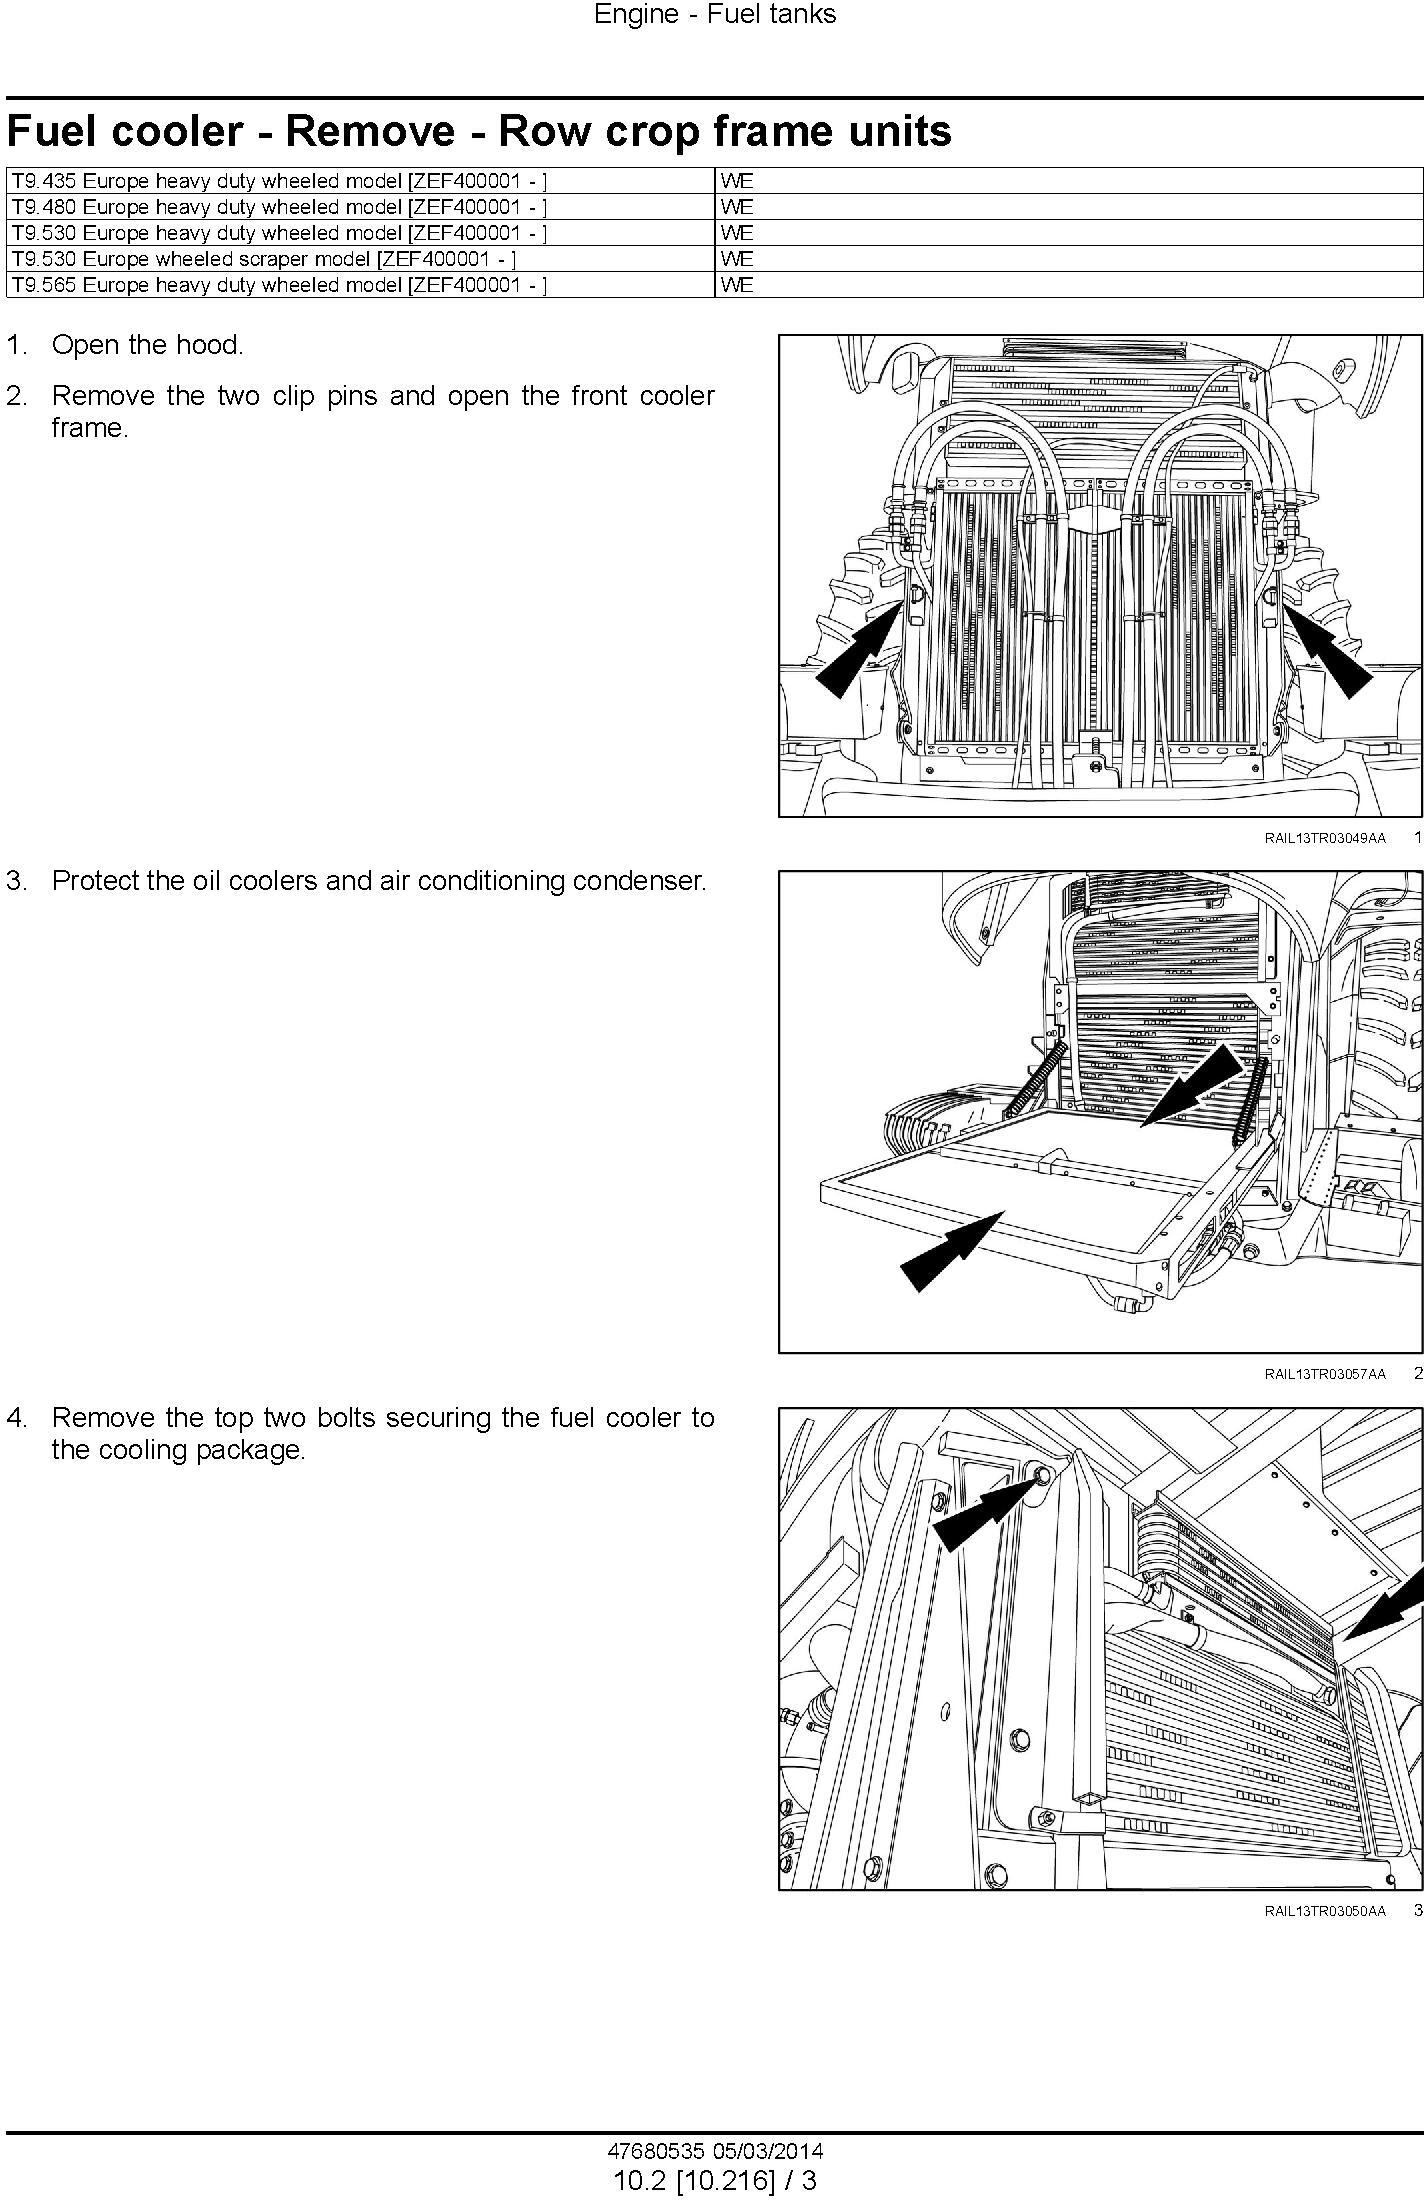 New Holland T9.435, T9.480, T9.530, T9.565, T9.600, T9.645, T9.700 European Tractor Service Manual - 2